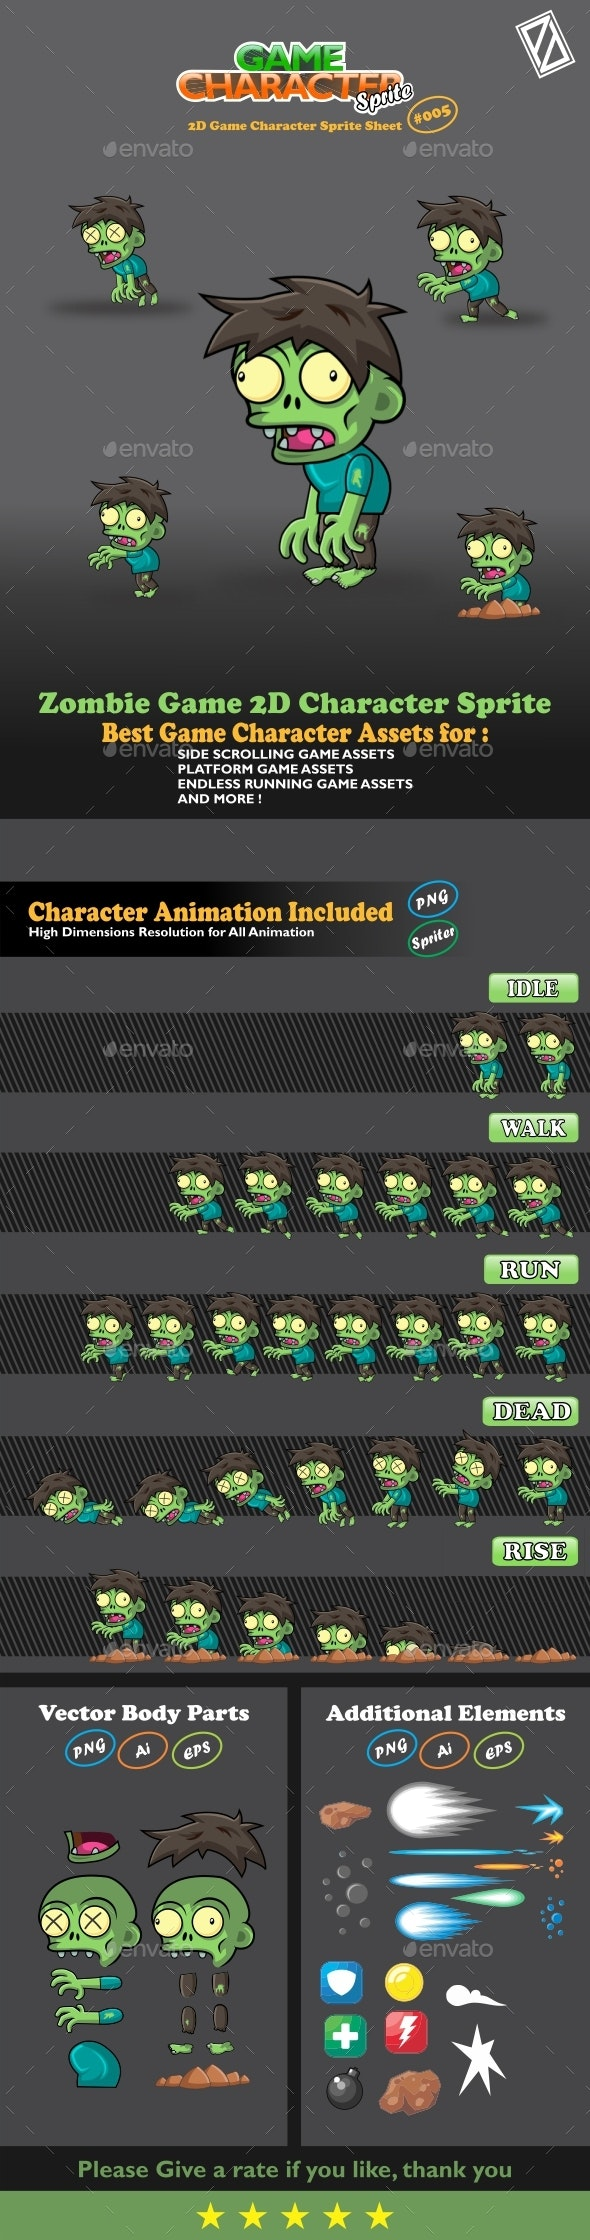 Zombie Game 2D Character Sprite - Sprites Game Assets